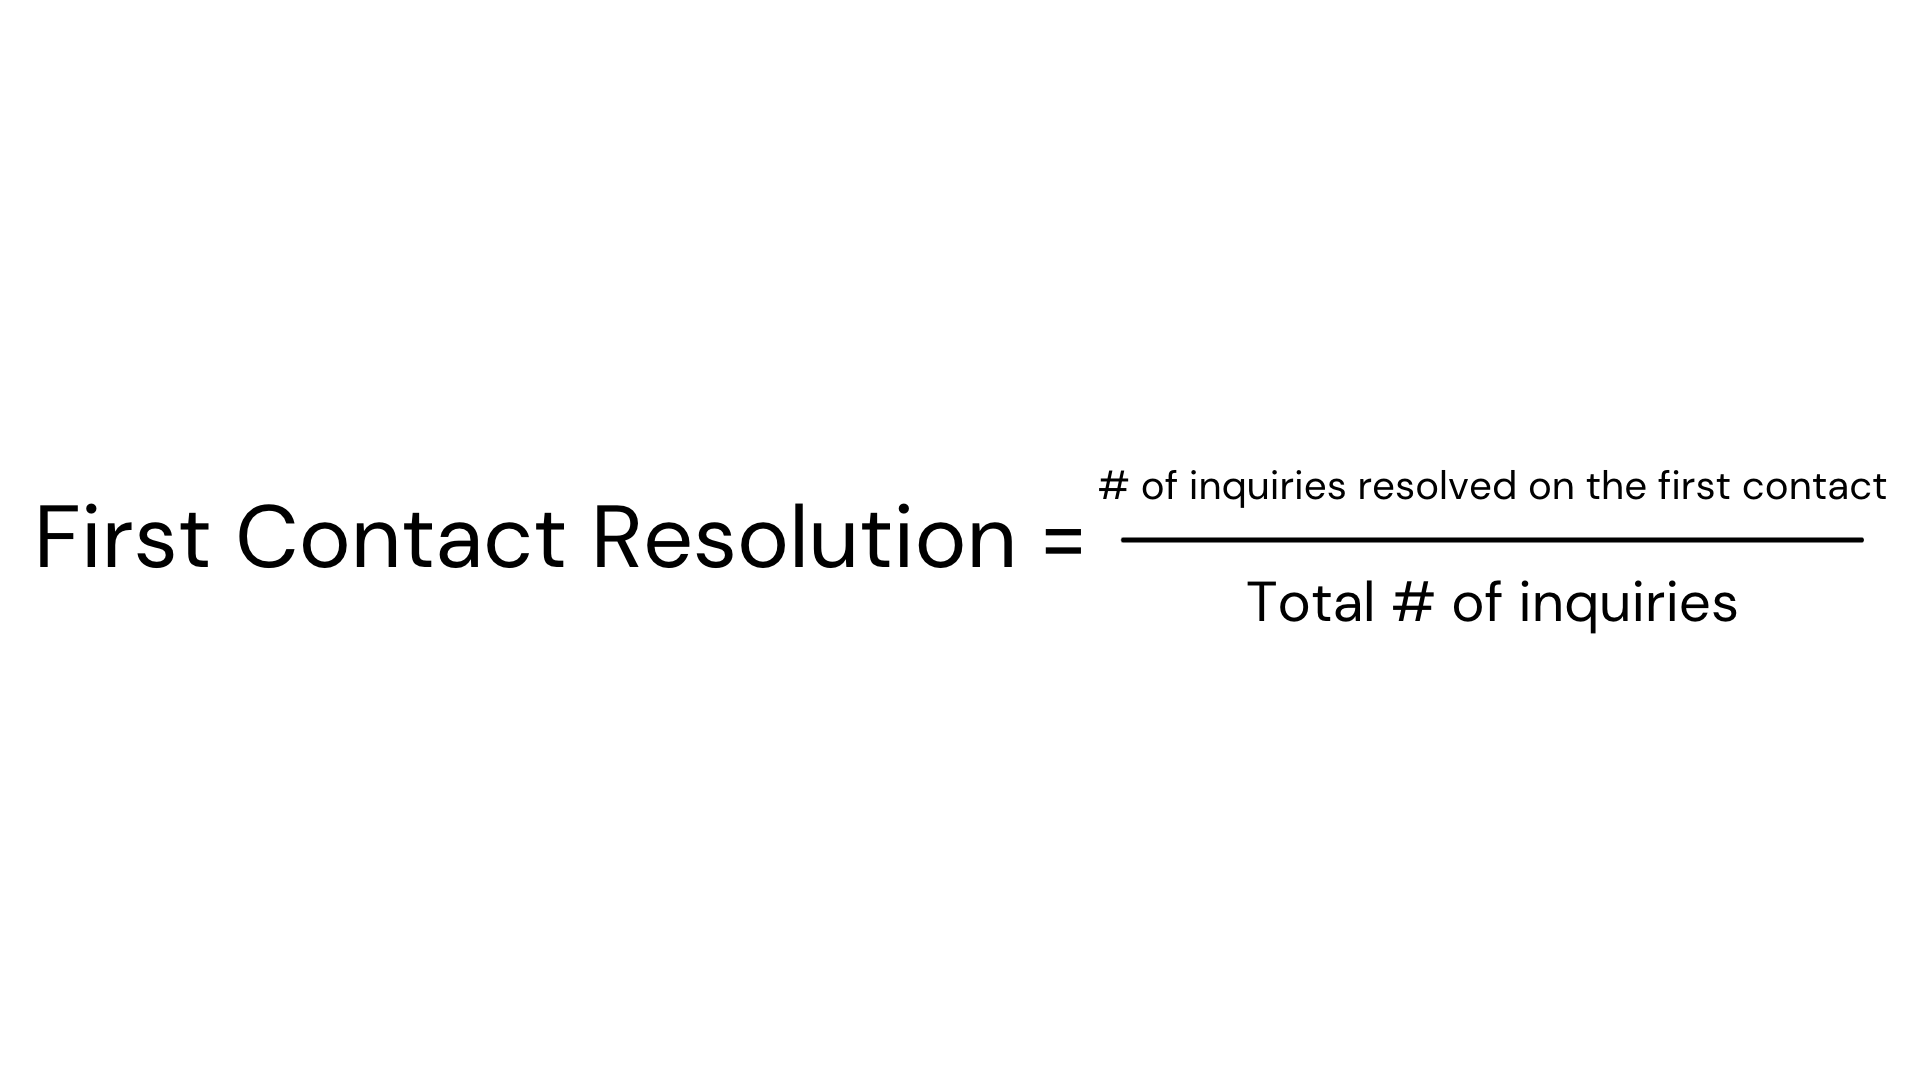 First Contact Resolution Formula